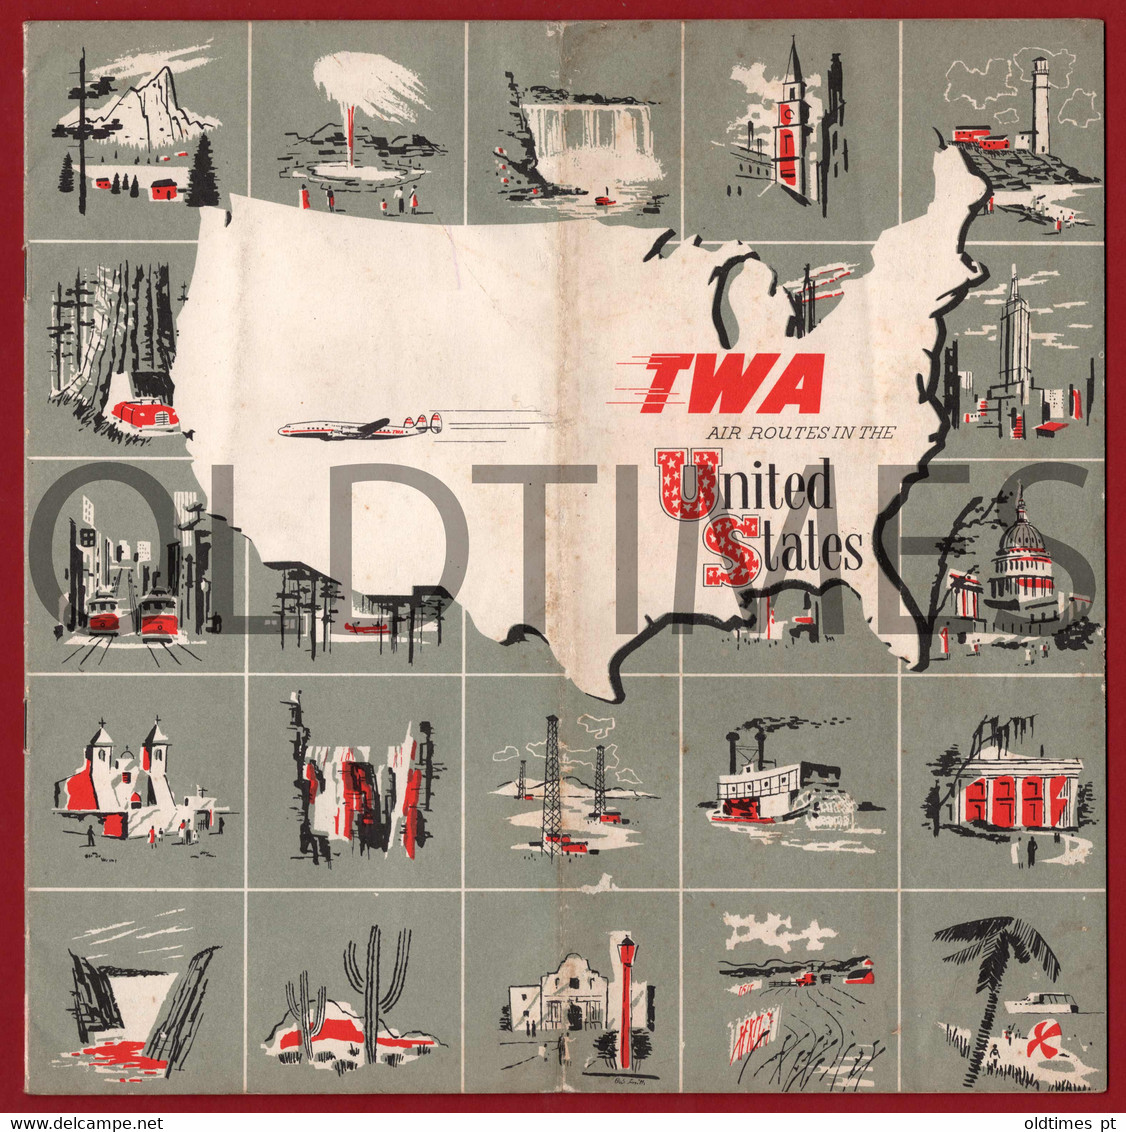 USA - TWA - TRANS WORLD AIRWAYS - AIR ROUTES IN UNITED STATES - FLIGHT MAP - 1950 - World